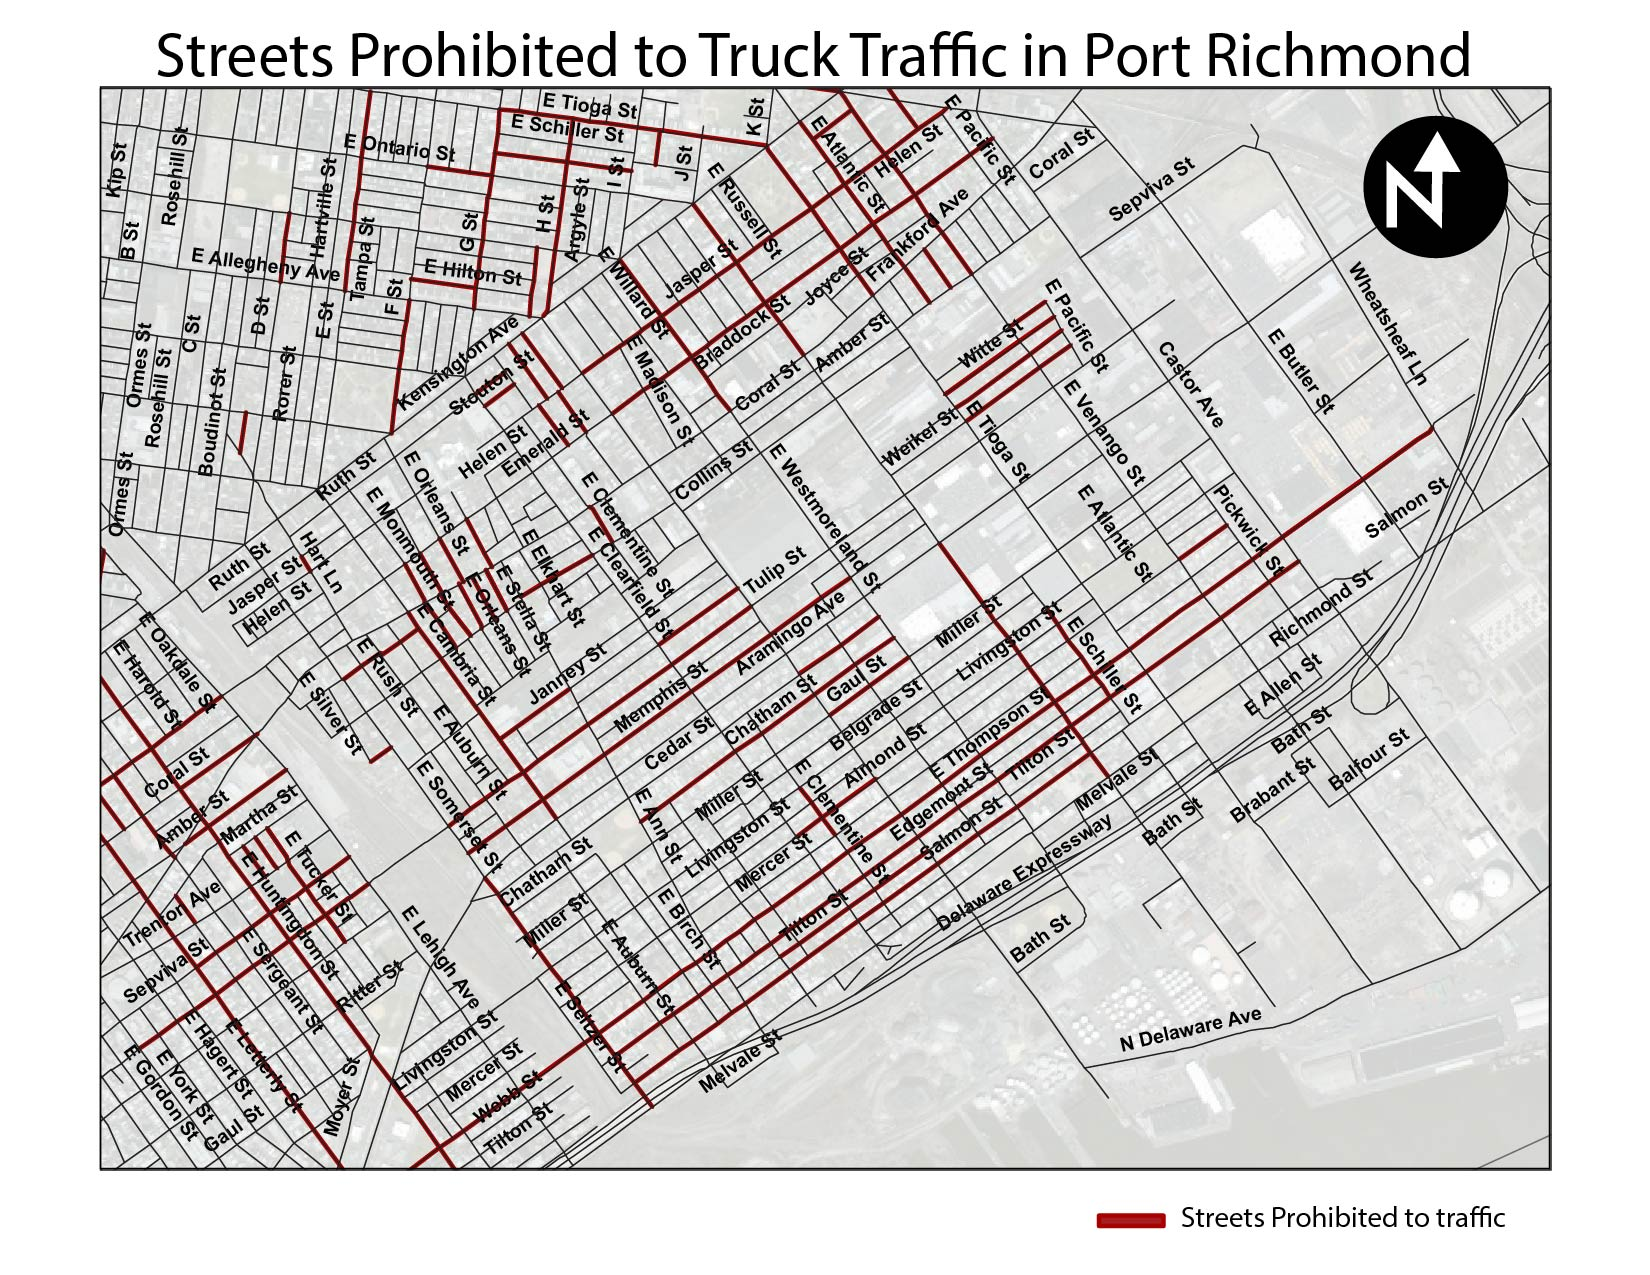 Richmond Traffic Map.Infrastructure Portrichmondair